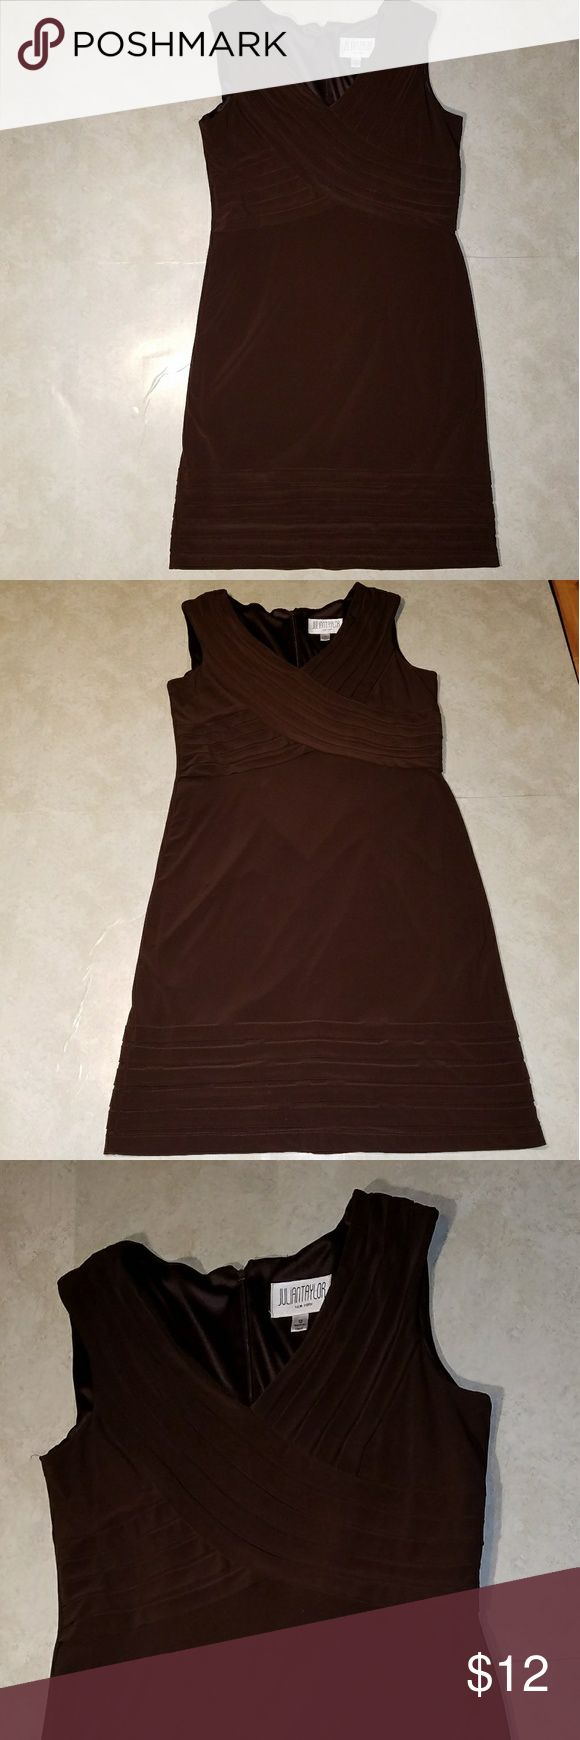 """Julian Taylor New York Brown Cocktail Dress Sz 12 ~Julian Taylor New York Brown Cocktail Dress  ~Size: 12 ~Measurements: Bust: 32"""" (laid flat then doubled) 